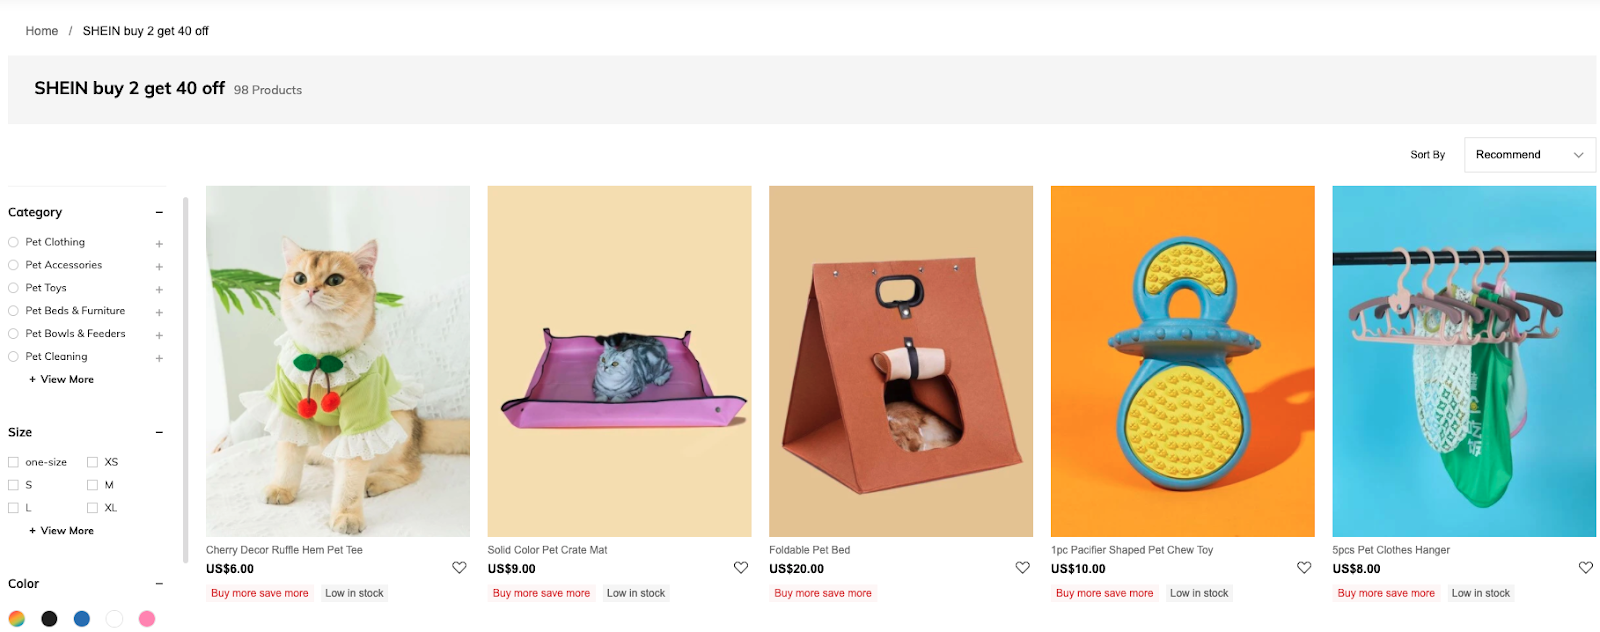 Percentage discount on multiple bundles by Shein